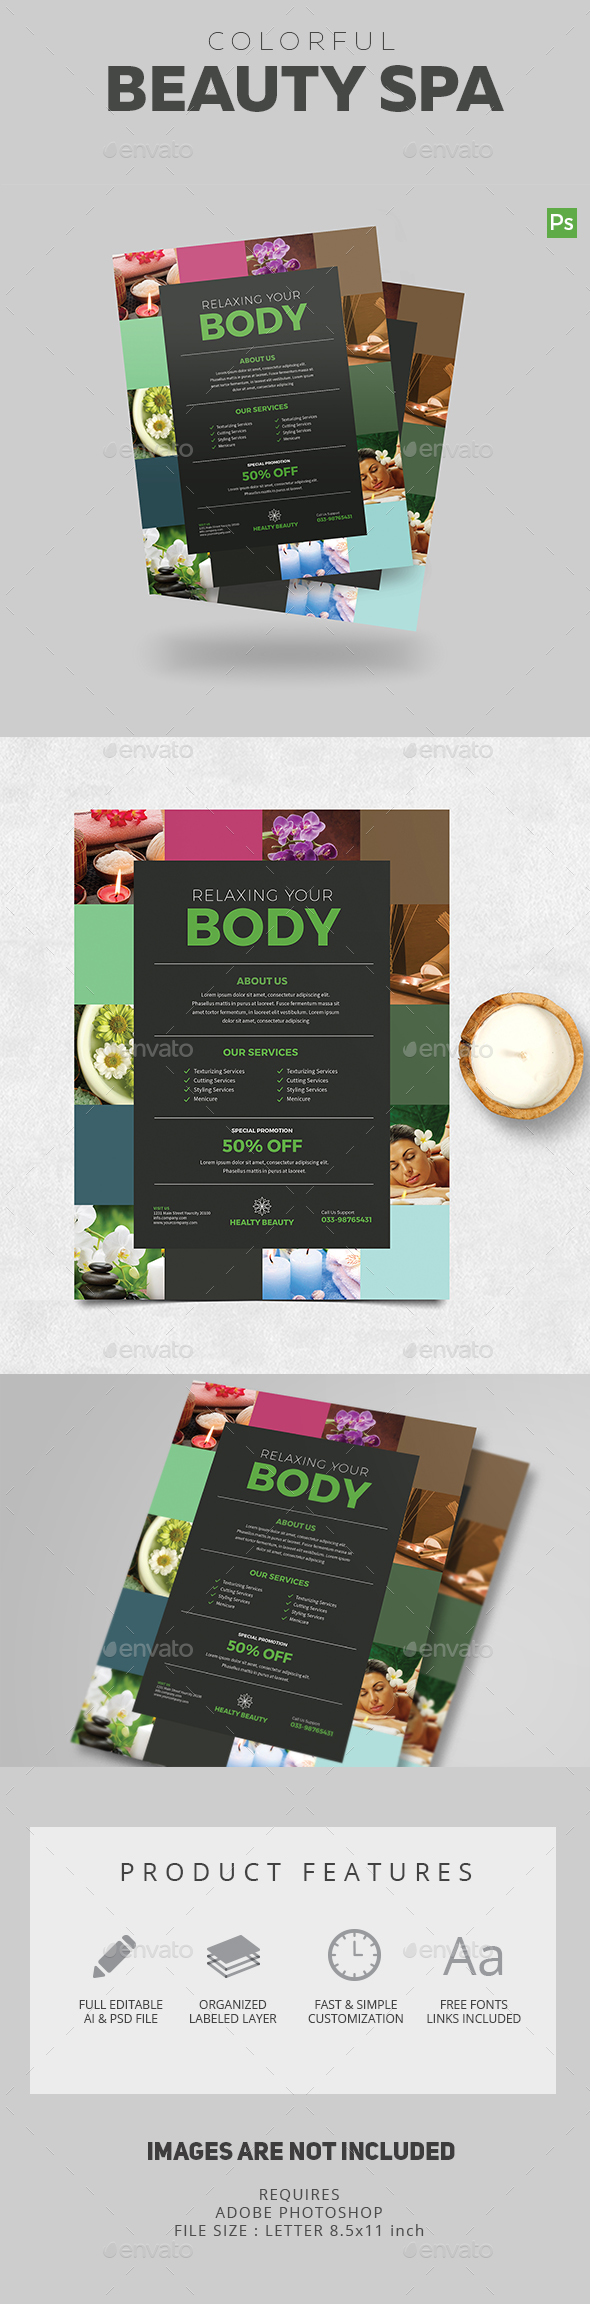 Colorful Spa Flyer - Corporate Flyers